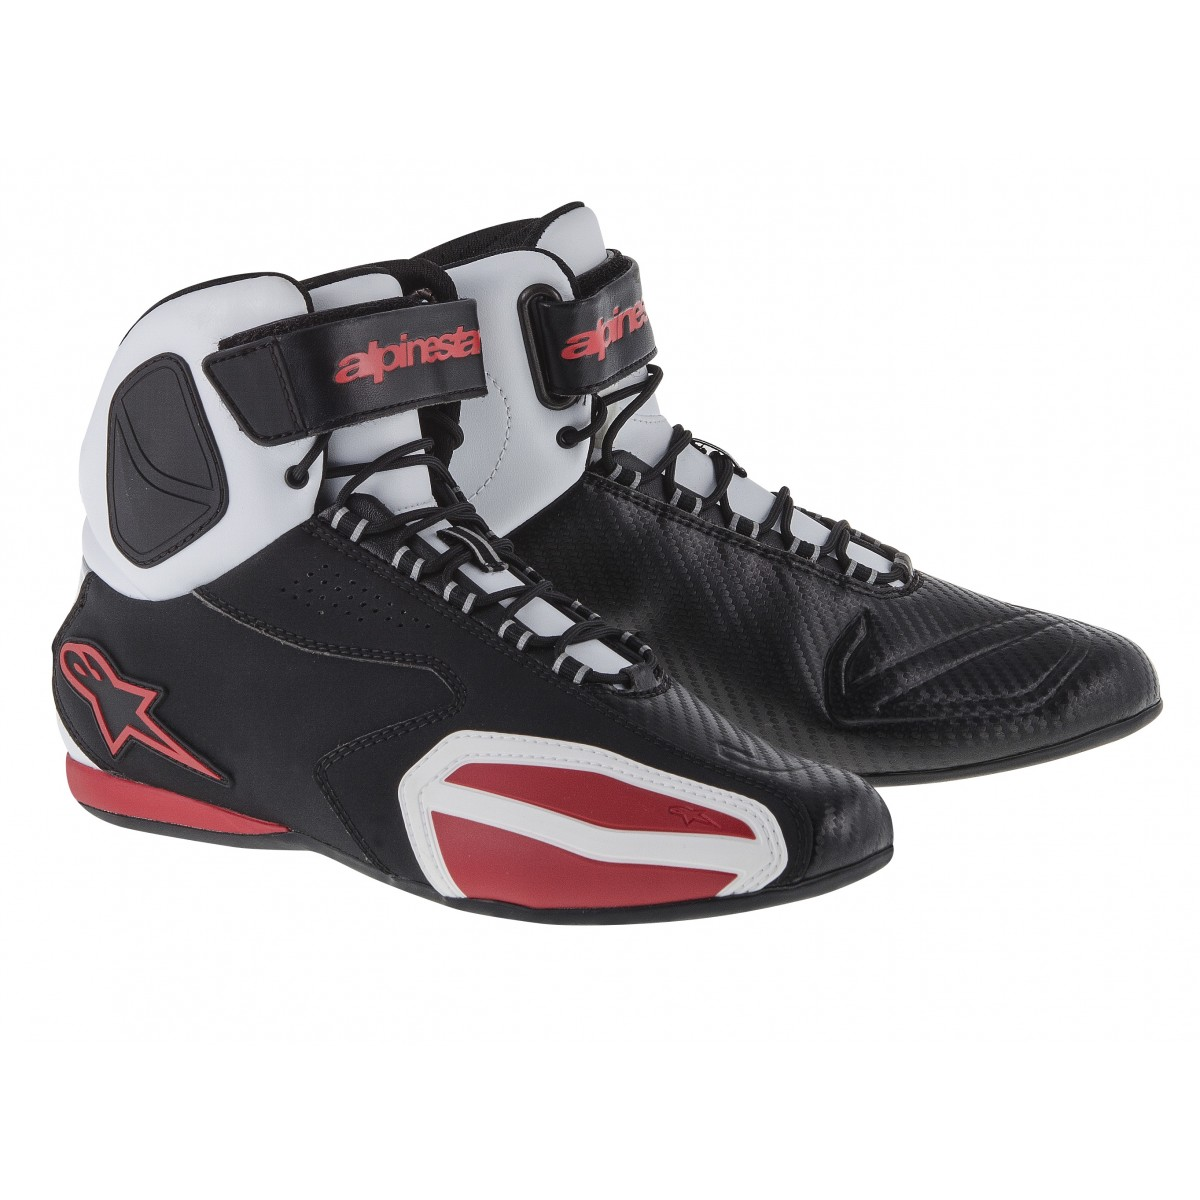 Tênis Alpinestars Faster Tricolor (Black/White/Red)  - Super Bike - Loja Oficial Alpinestars